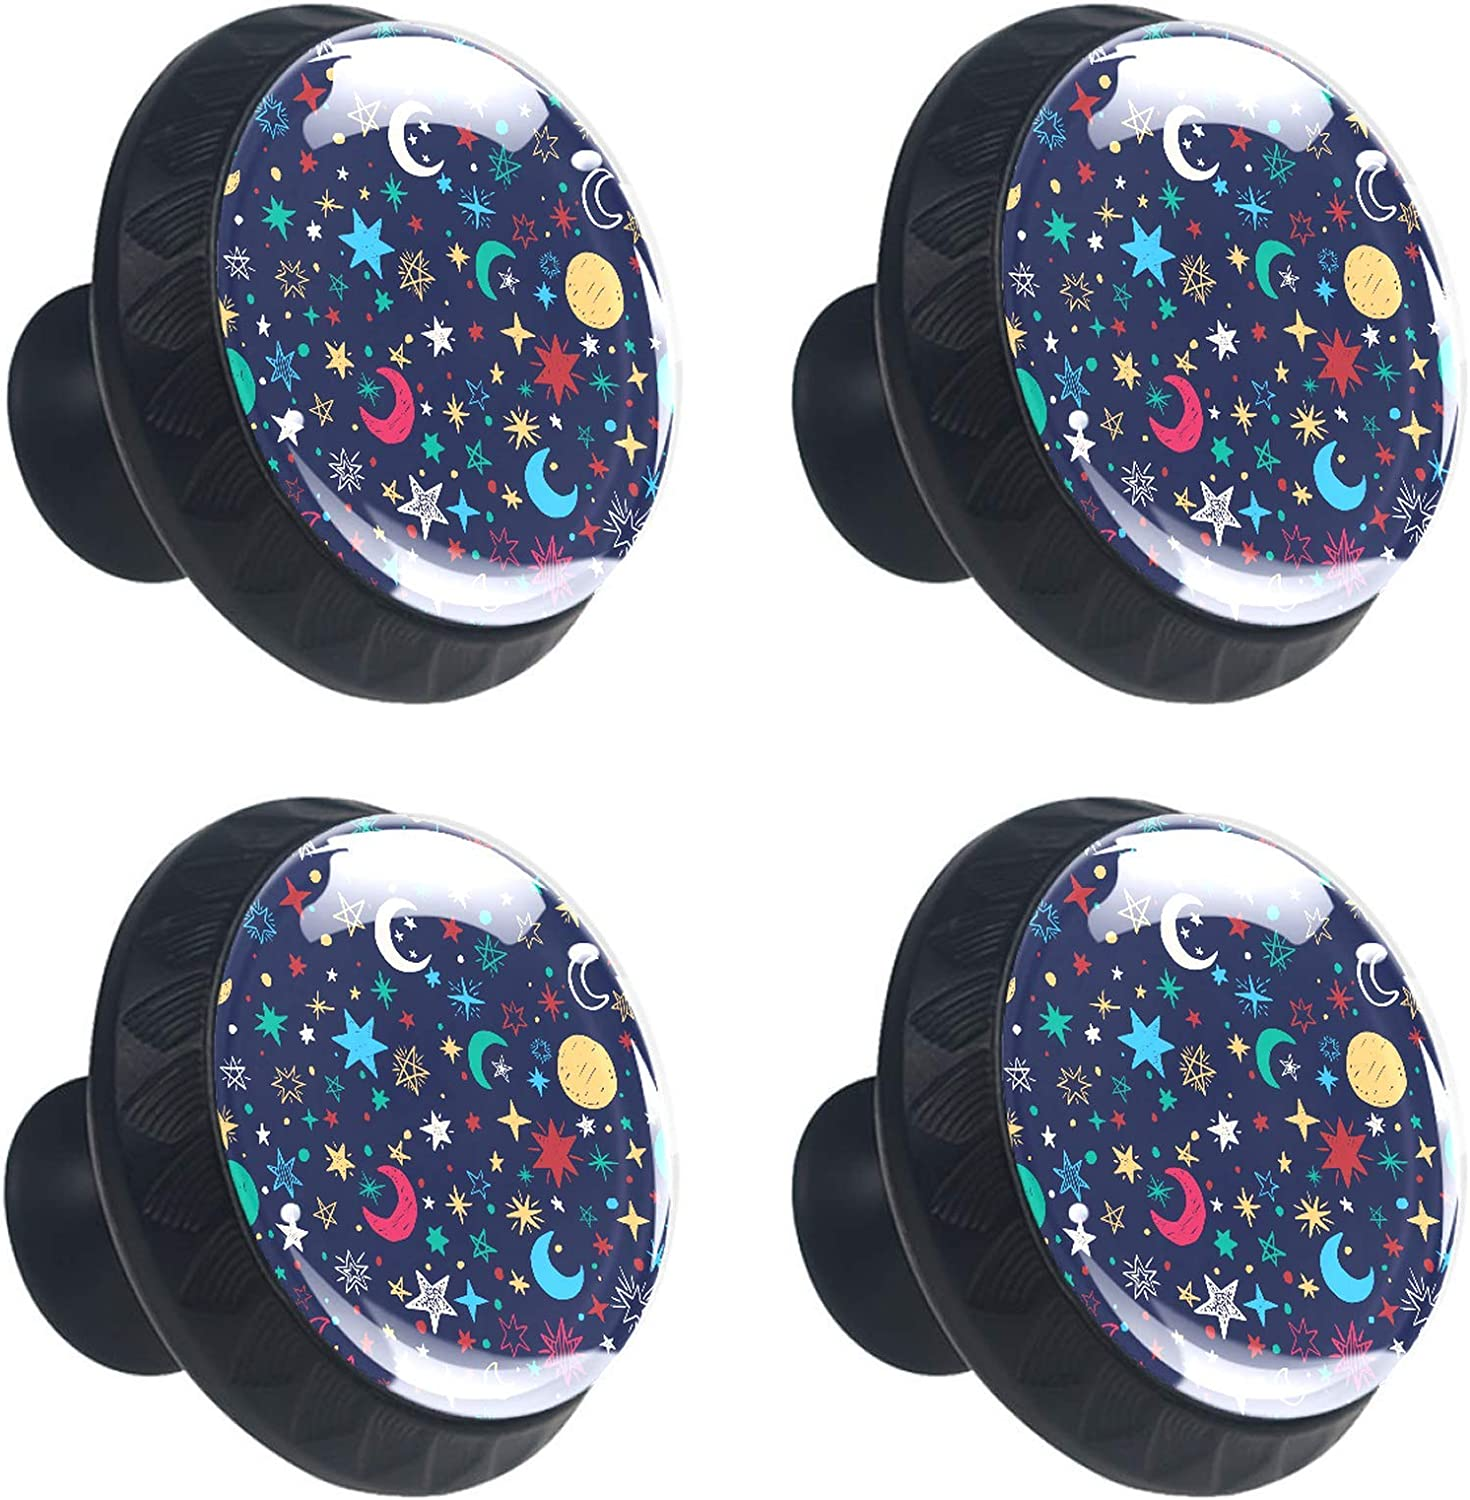 Door Knobs Galaxy Stars Moon Drawer Knobs Lovely Handle Pull Cup